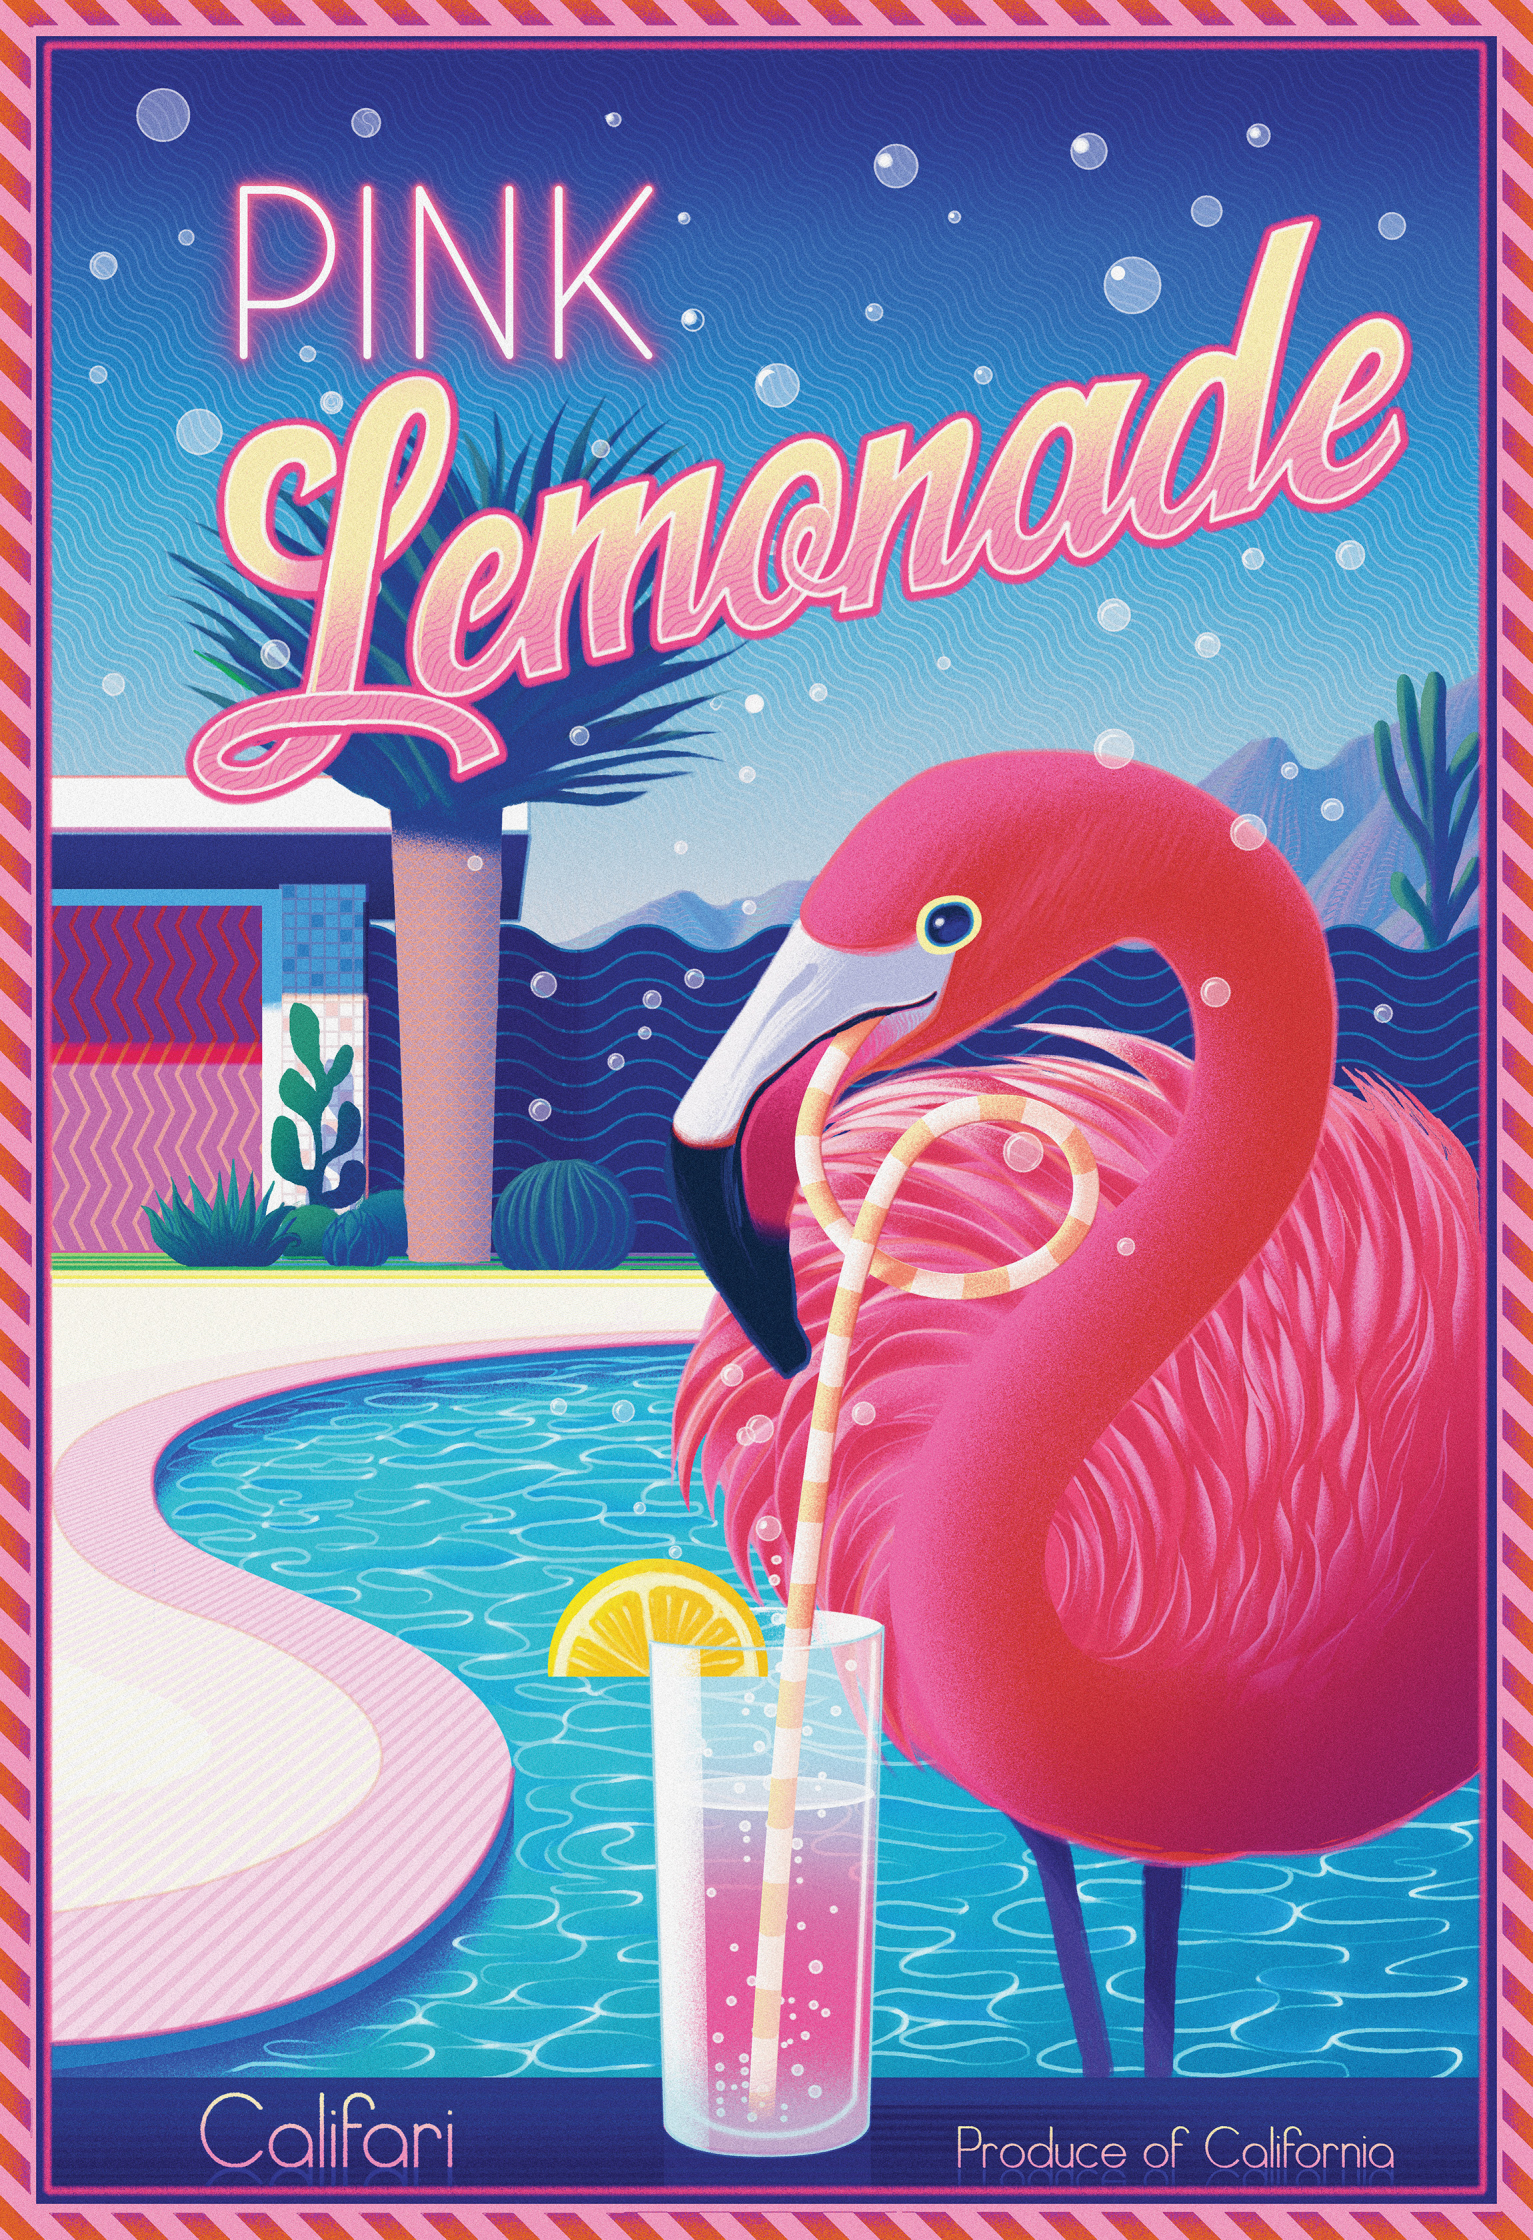 Califari-pink-lemonade-label.jpg